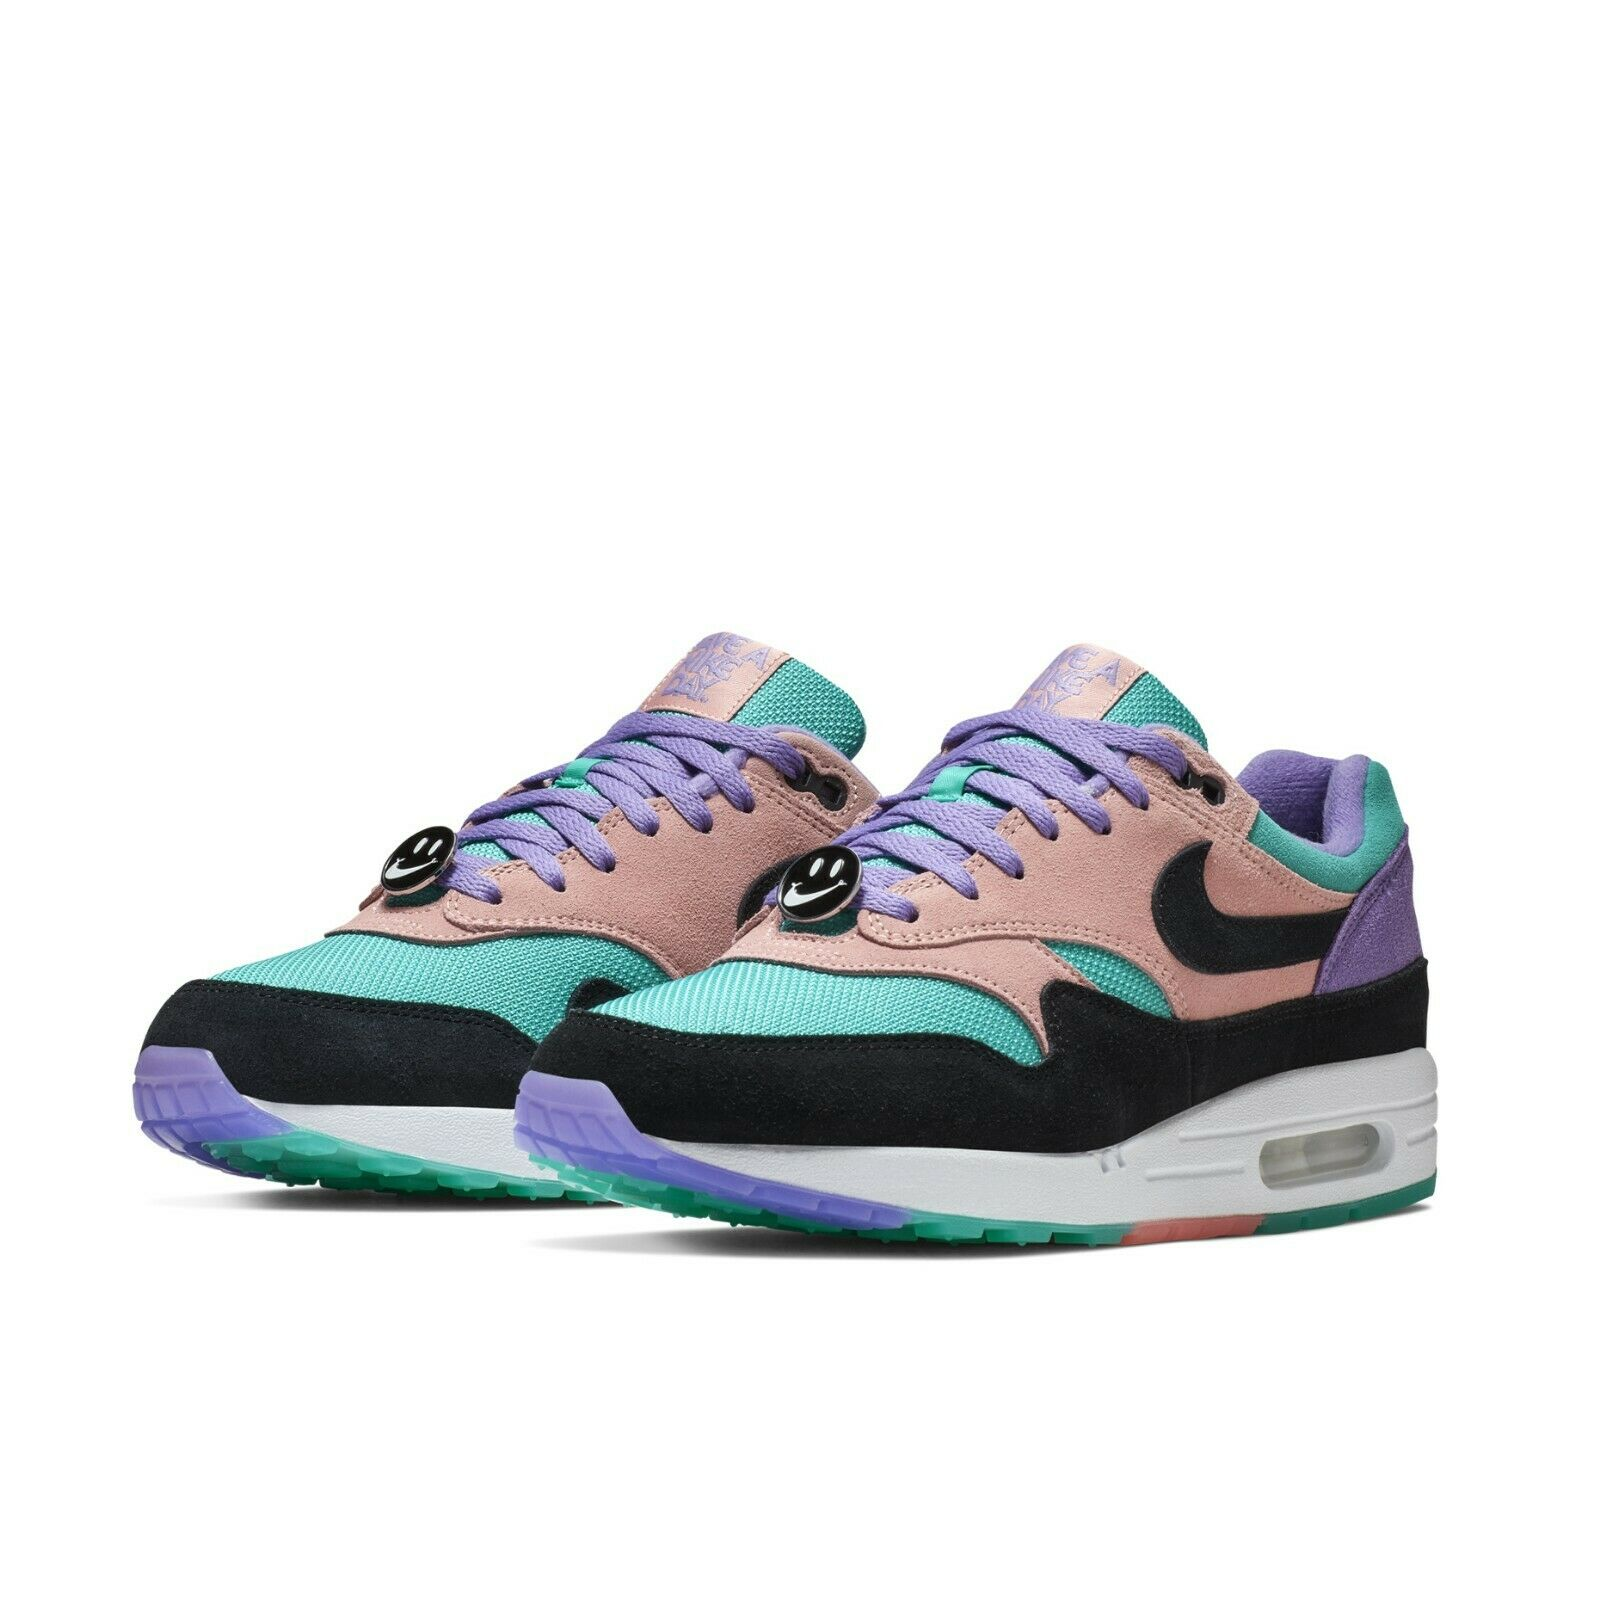 Details about Nike Mens Air Max 1 ND Have A Nike Day Purple Black Coral Sneakers BQ8929 500